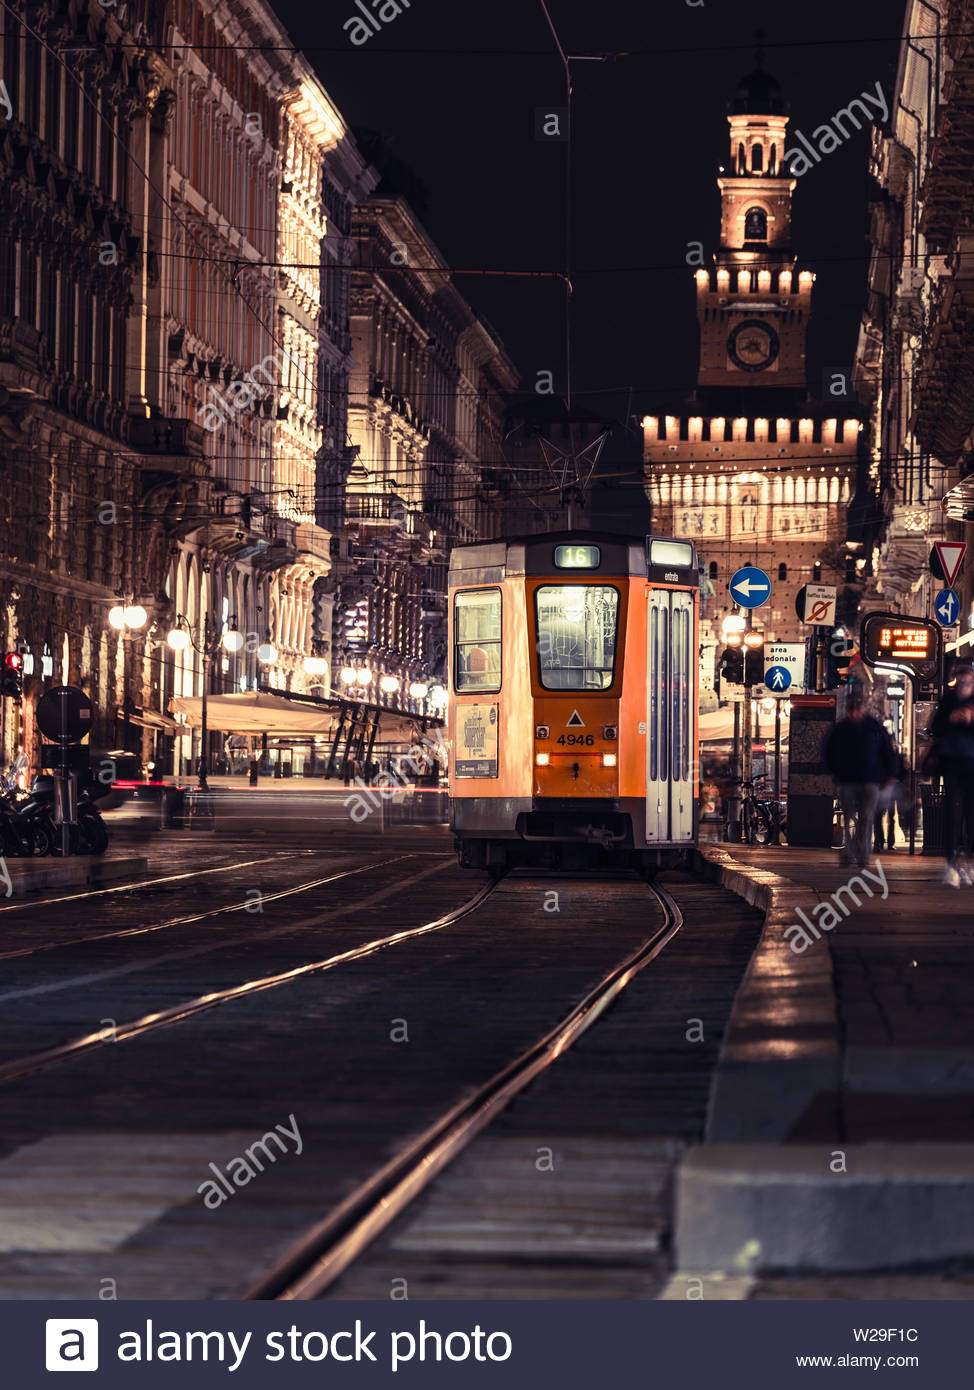 Milan, Italy, 09/11-18.Tram no 16 has stopped at night, at a busy tram station to let people in and out. - Stock Image